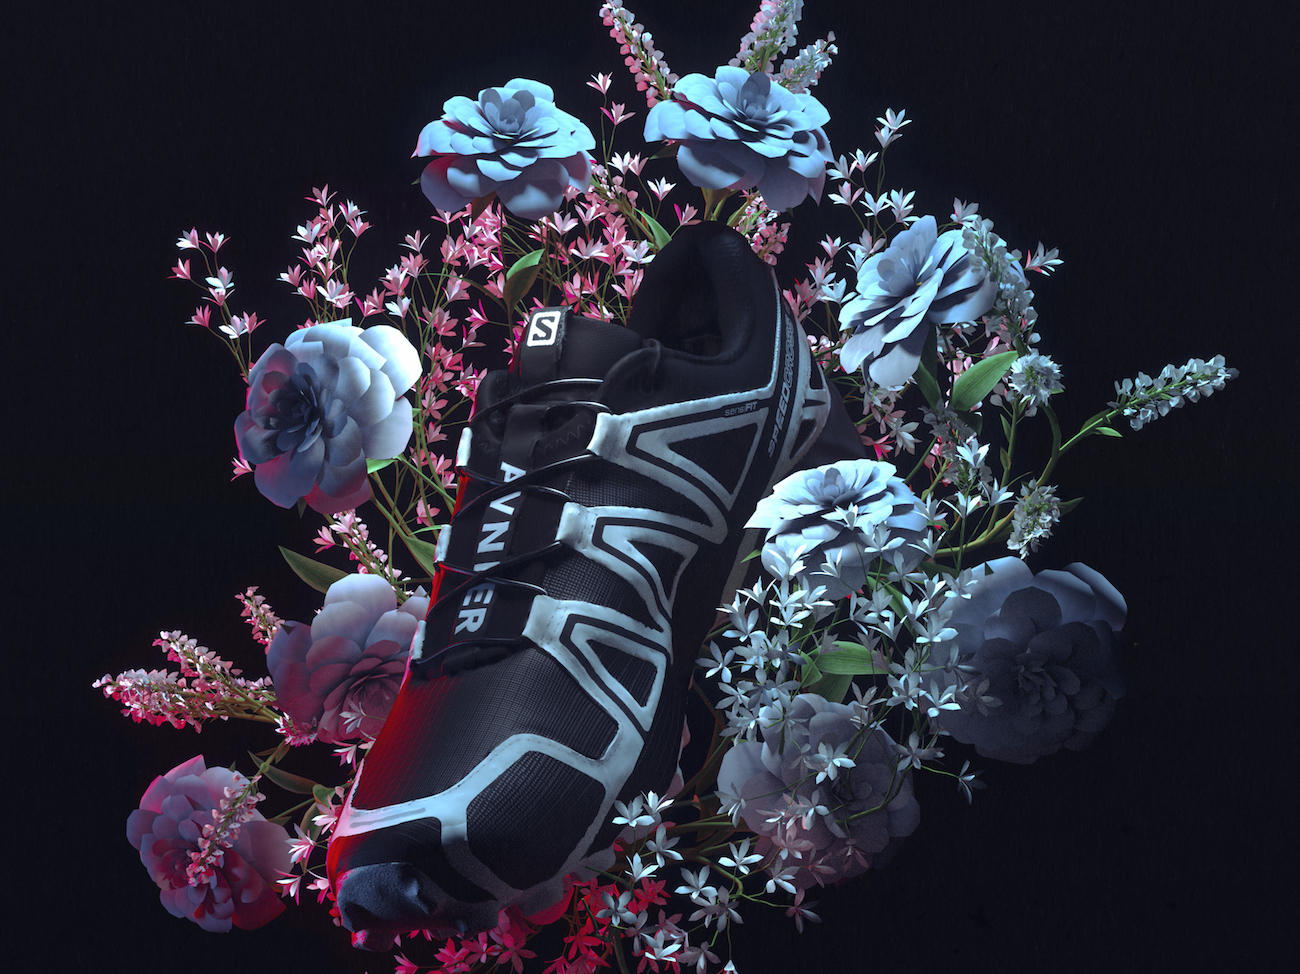 Salomon X Avnier Unveil New SpeedCross 4